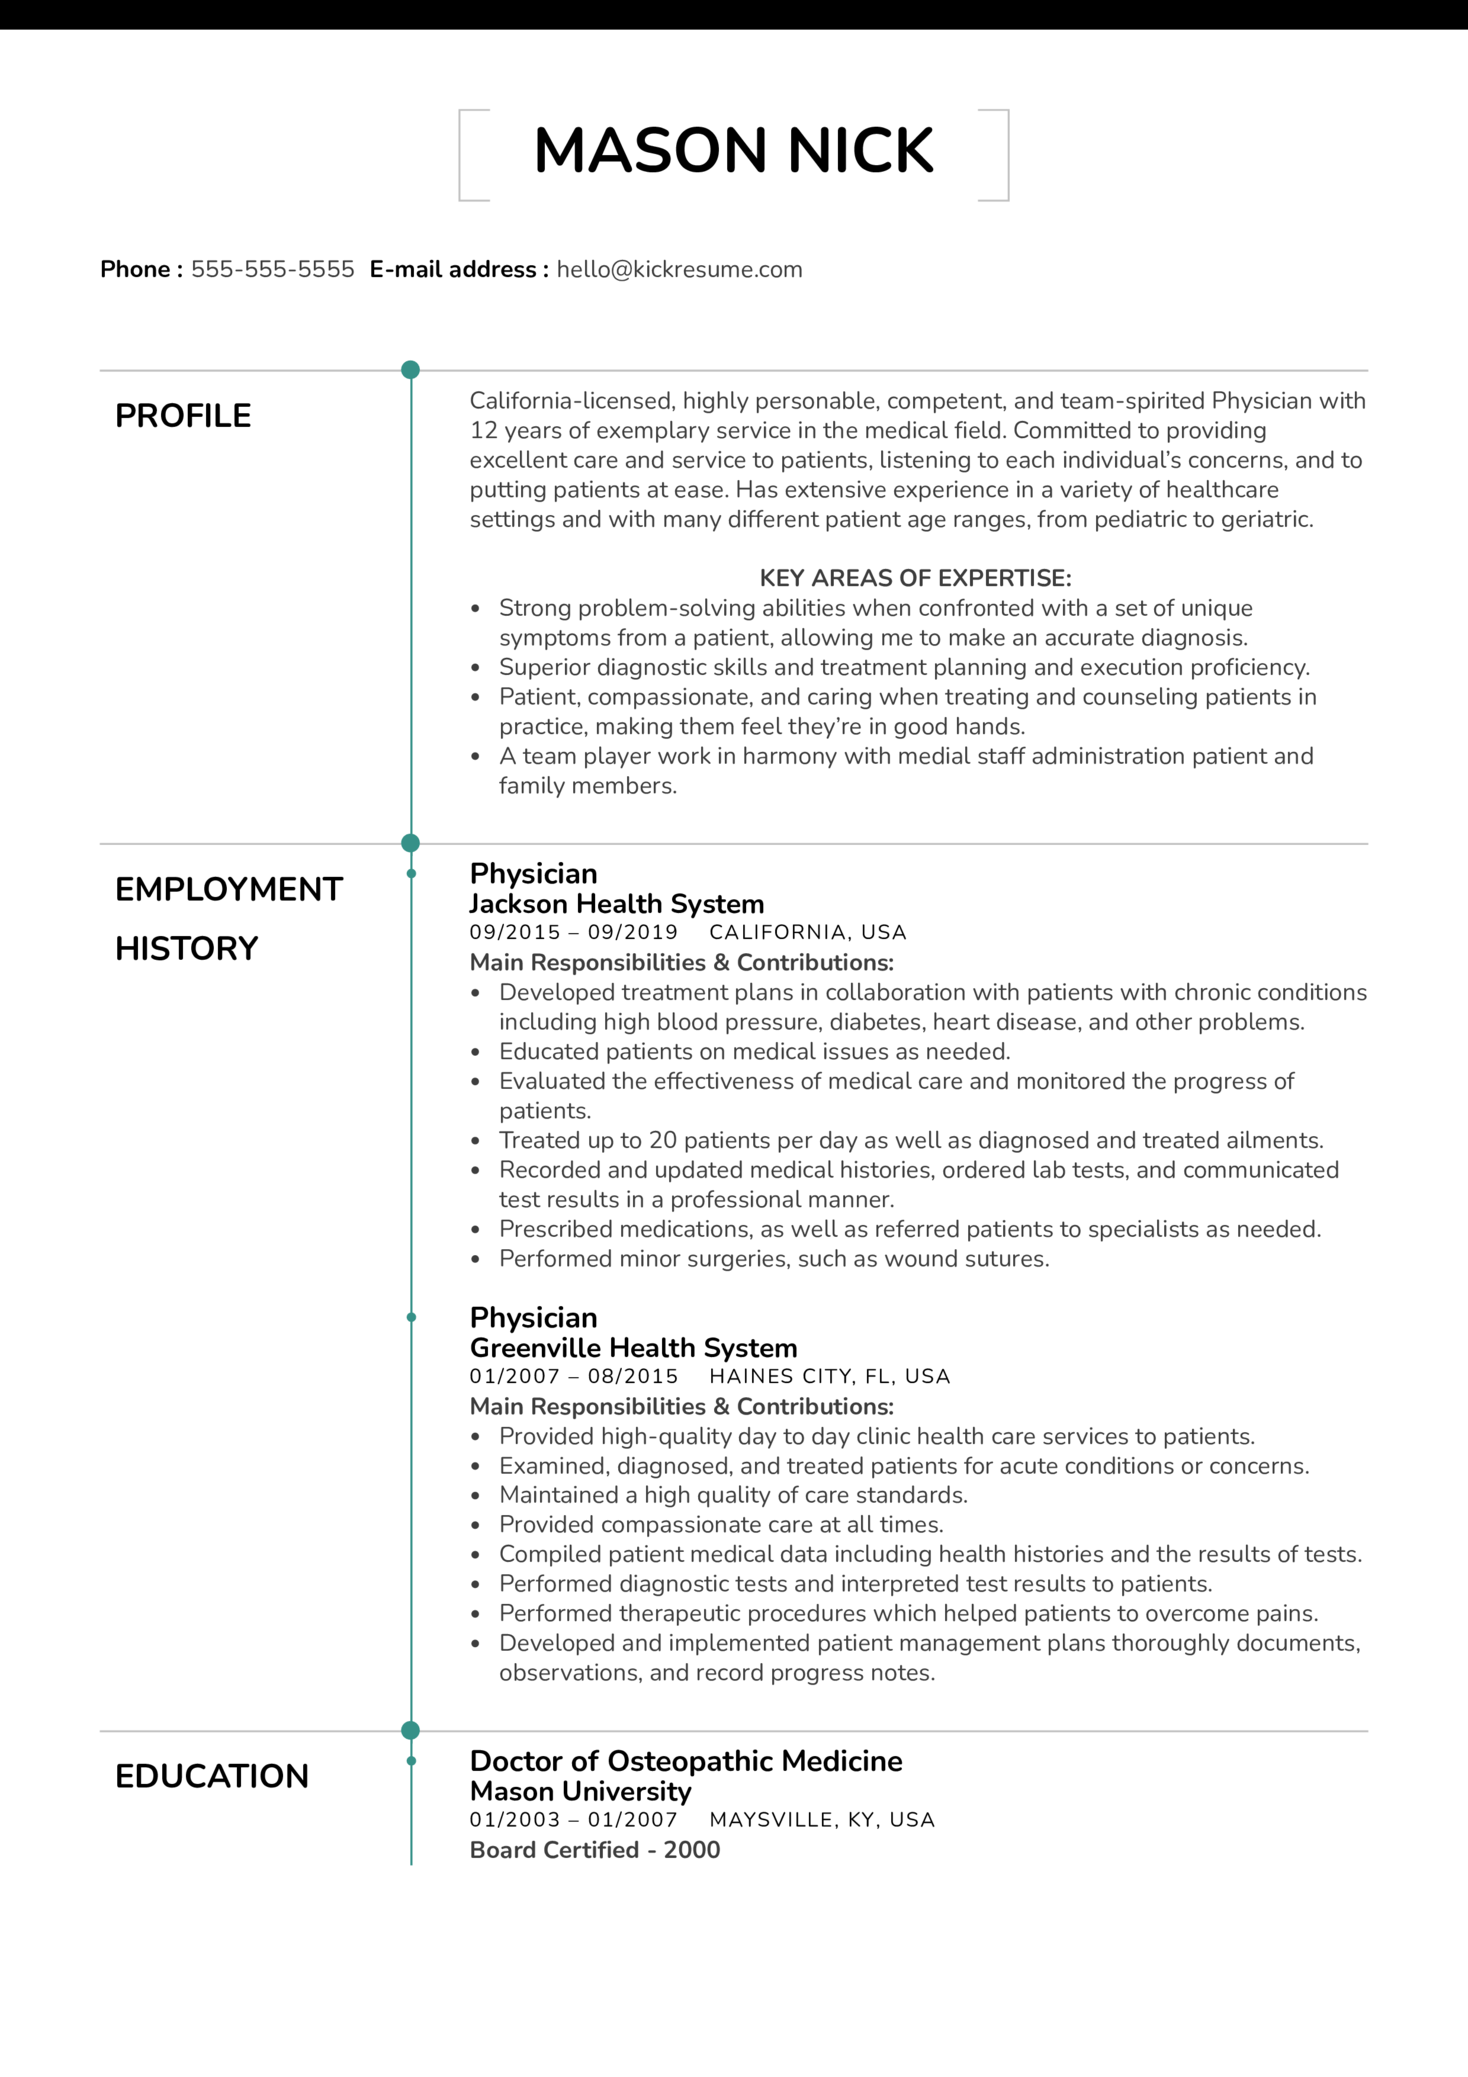 Doctor of osteopathic medicine resume